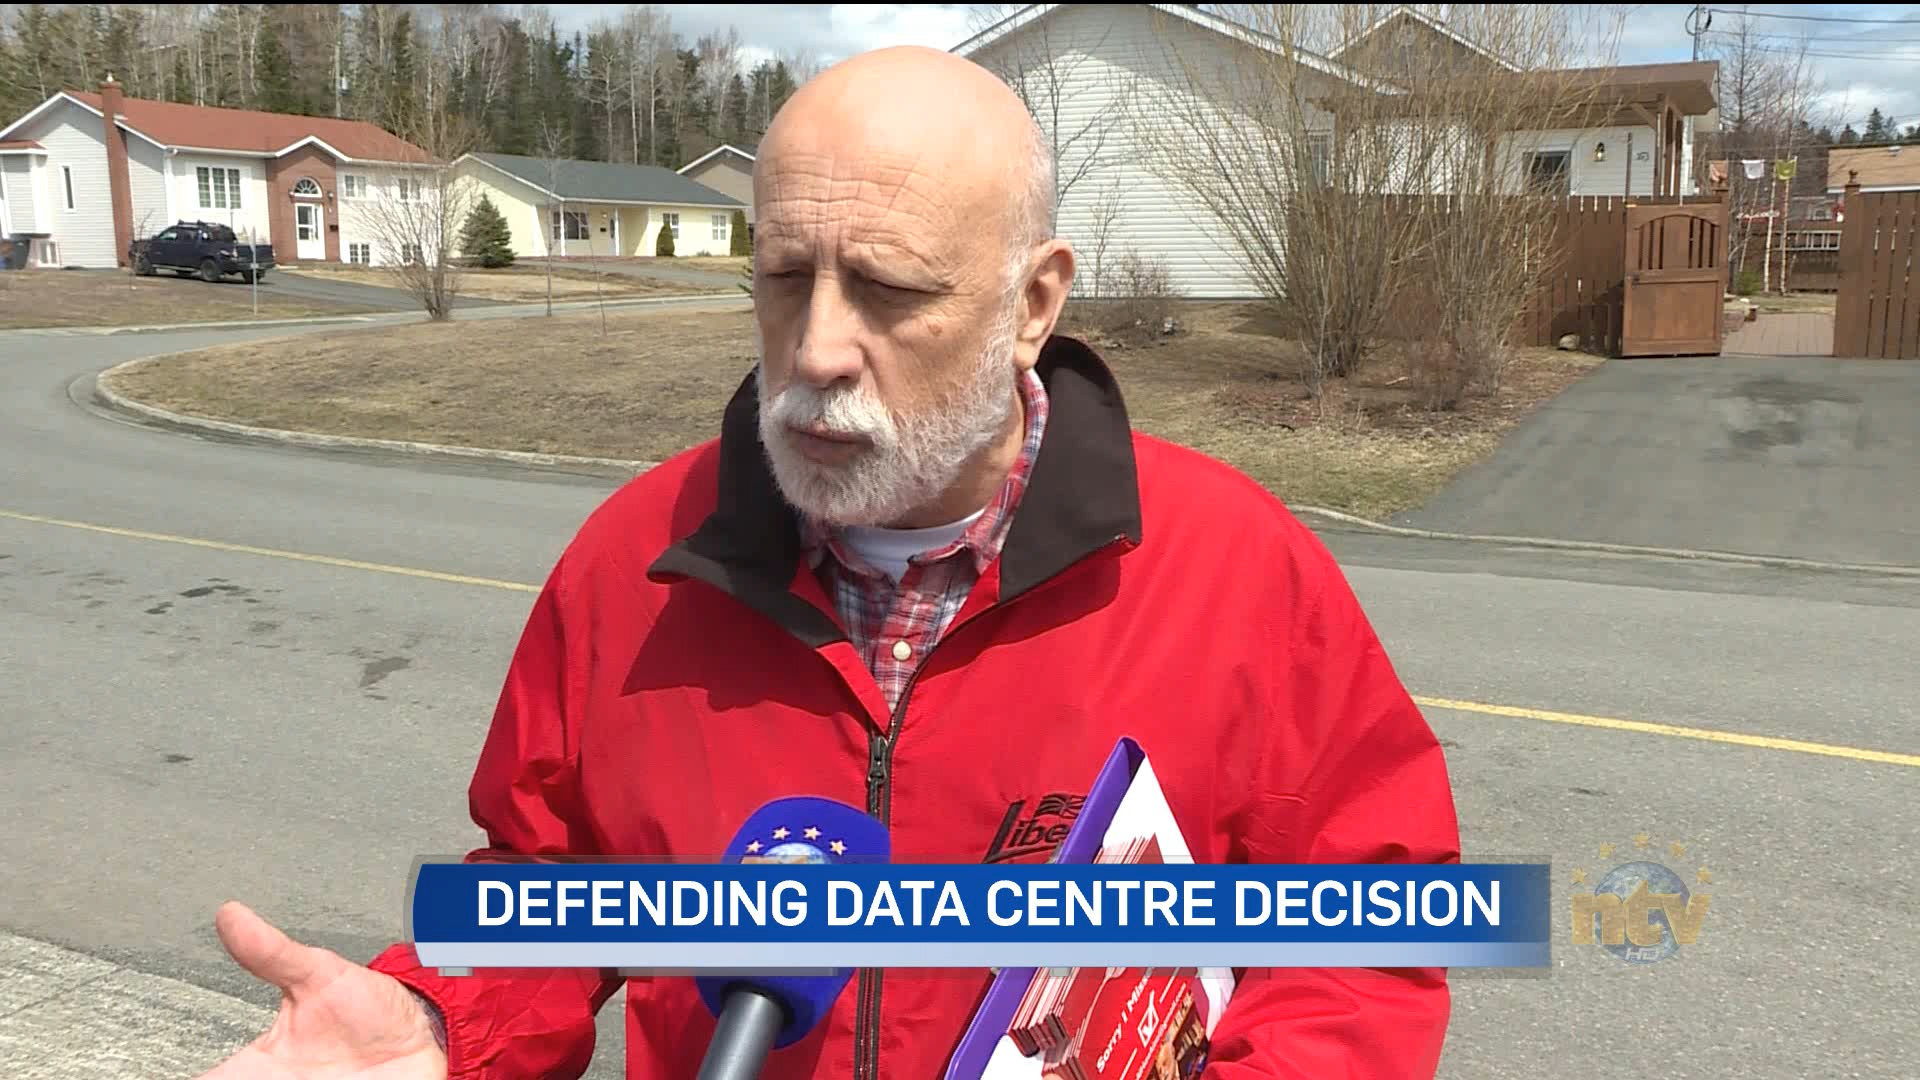 Al Hawkins defends government's policy on data centres